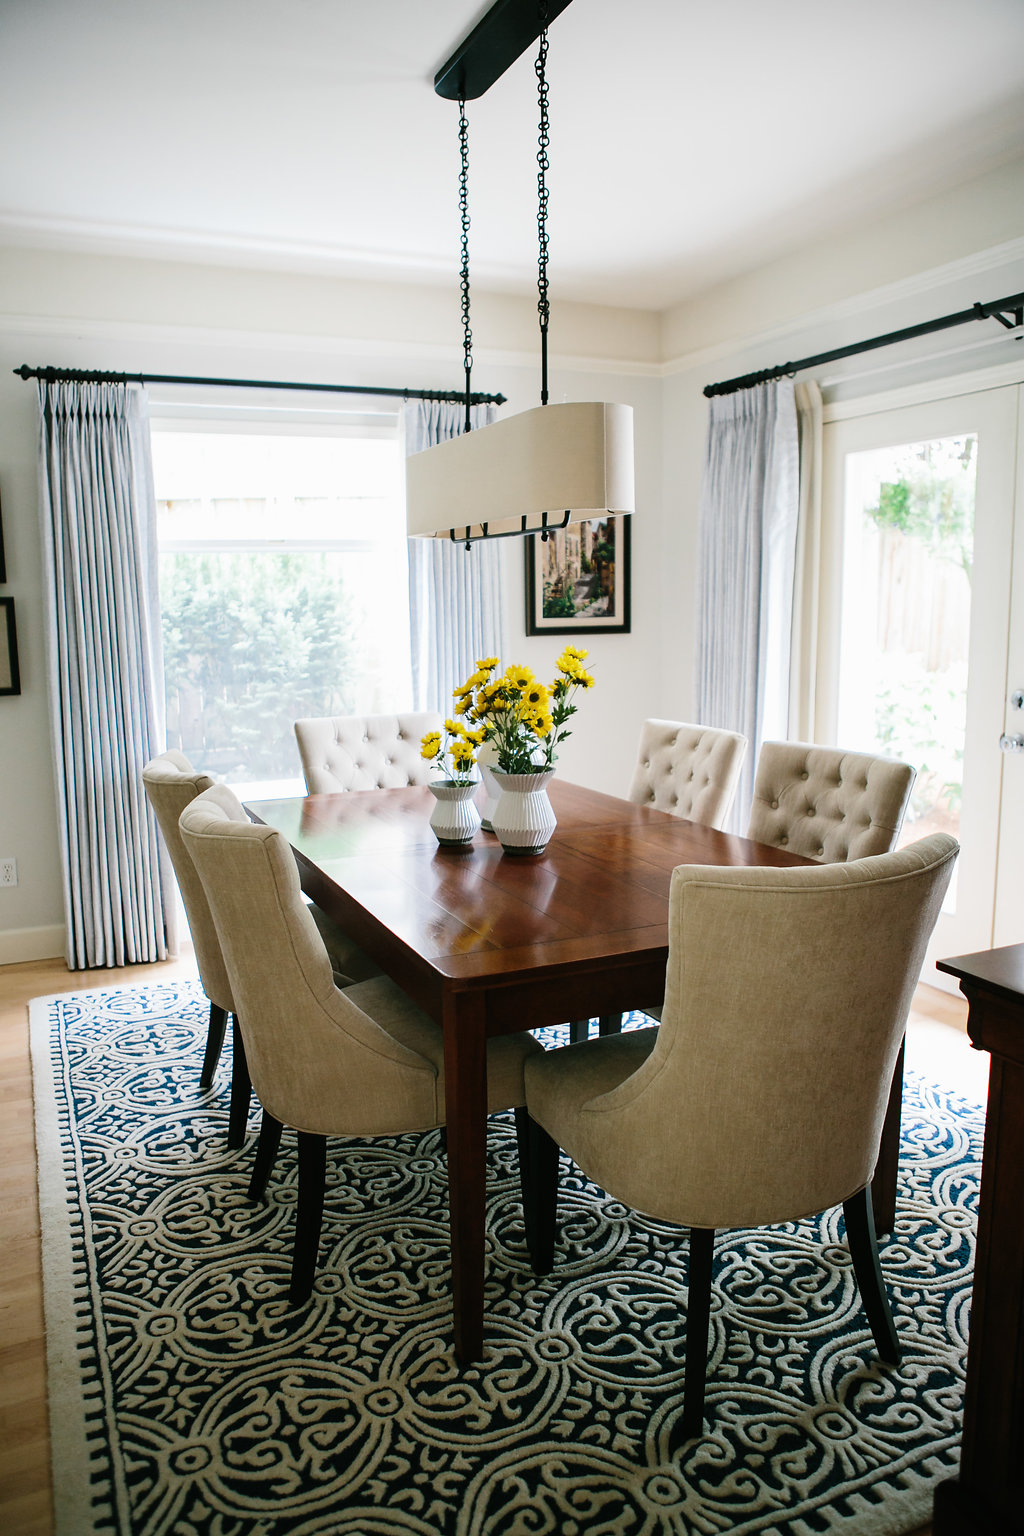 Dining table with chandelier and upholstered dining chairs.